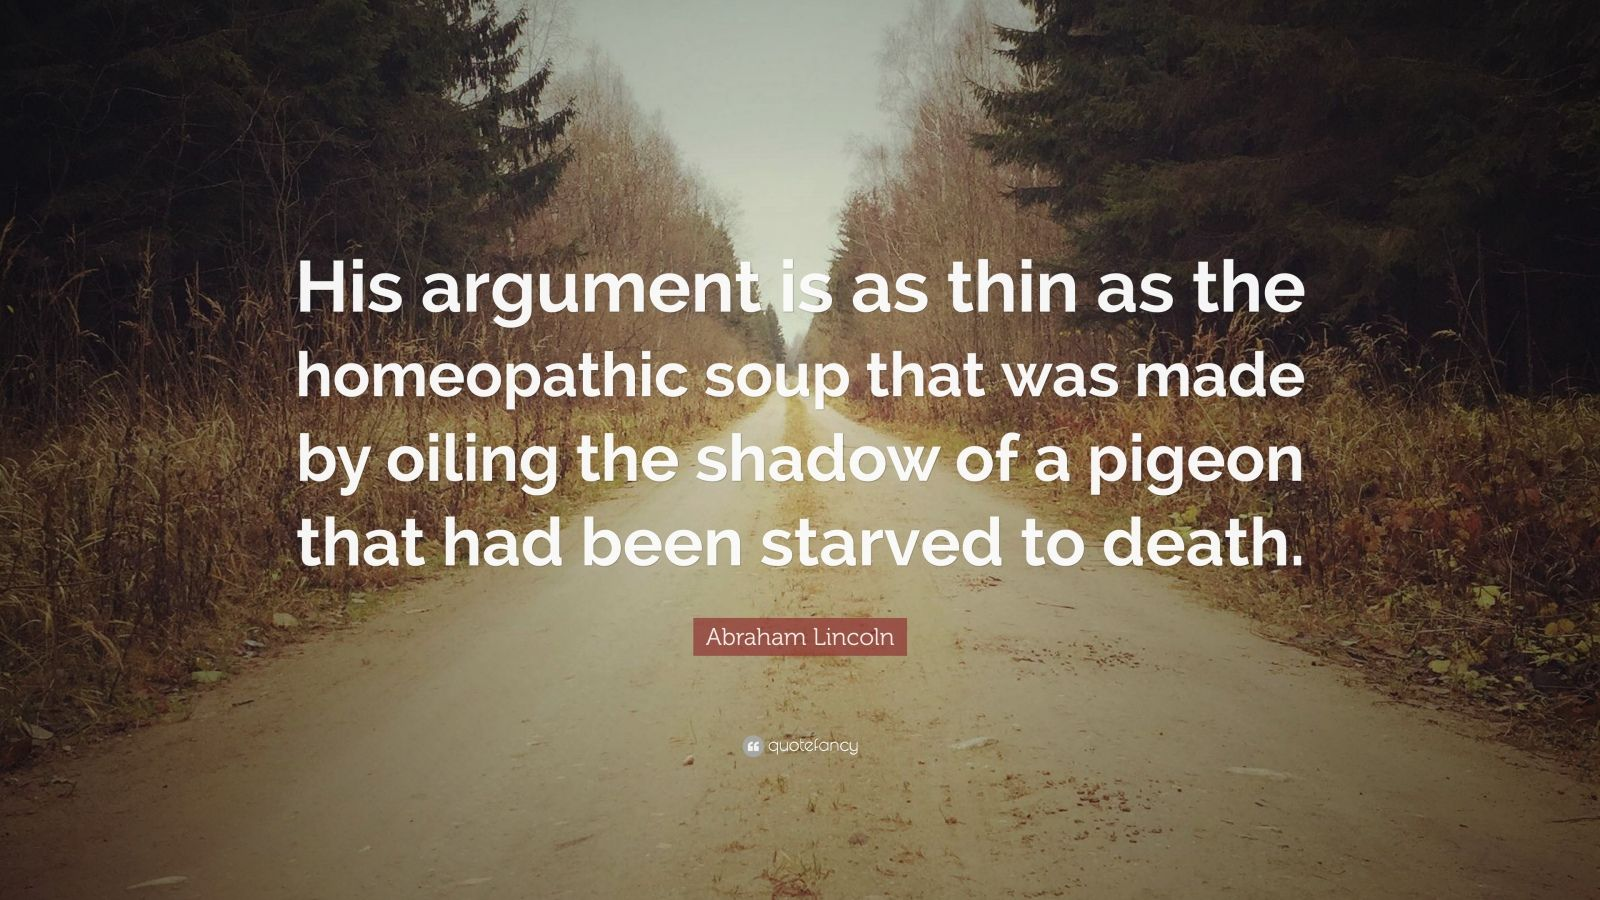 """Abraham Lincoln Quote: """"His argument is as thin as the homeopathic soup that was made by oiling the shadow of a pigeon that had been starved to death."""""""